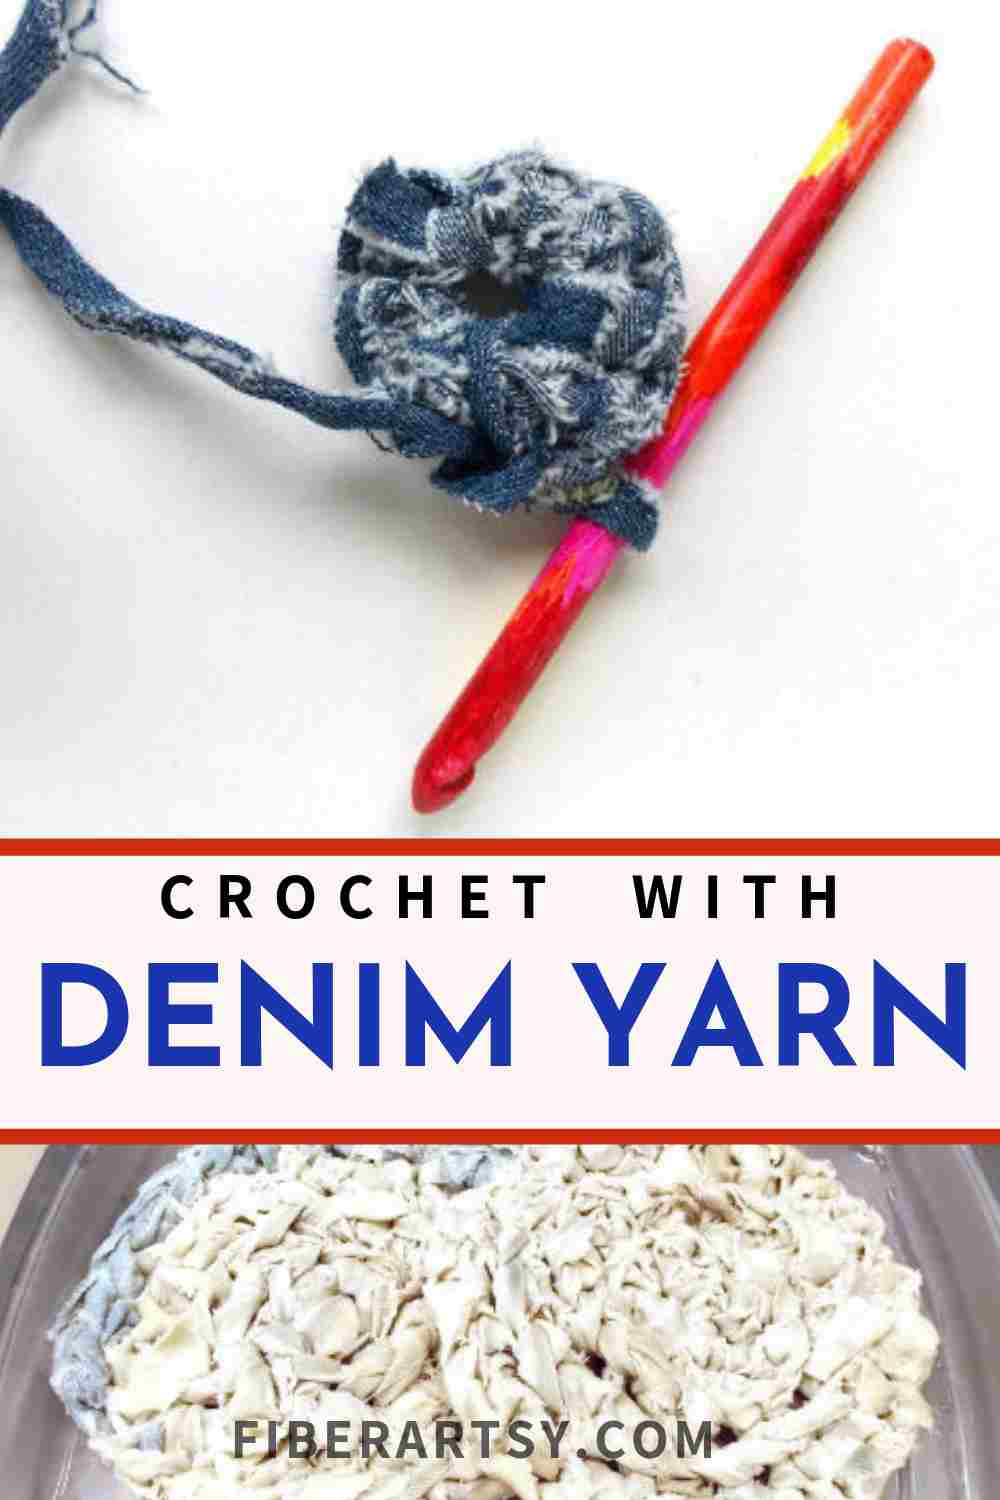 How to Crochet with Denim Yarn